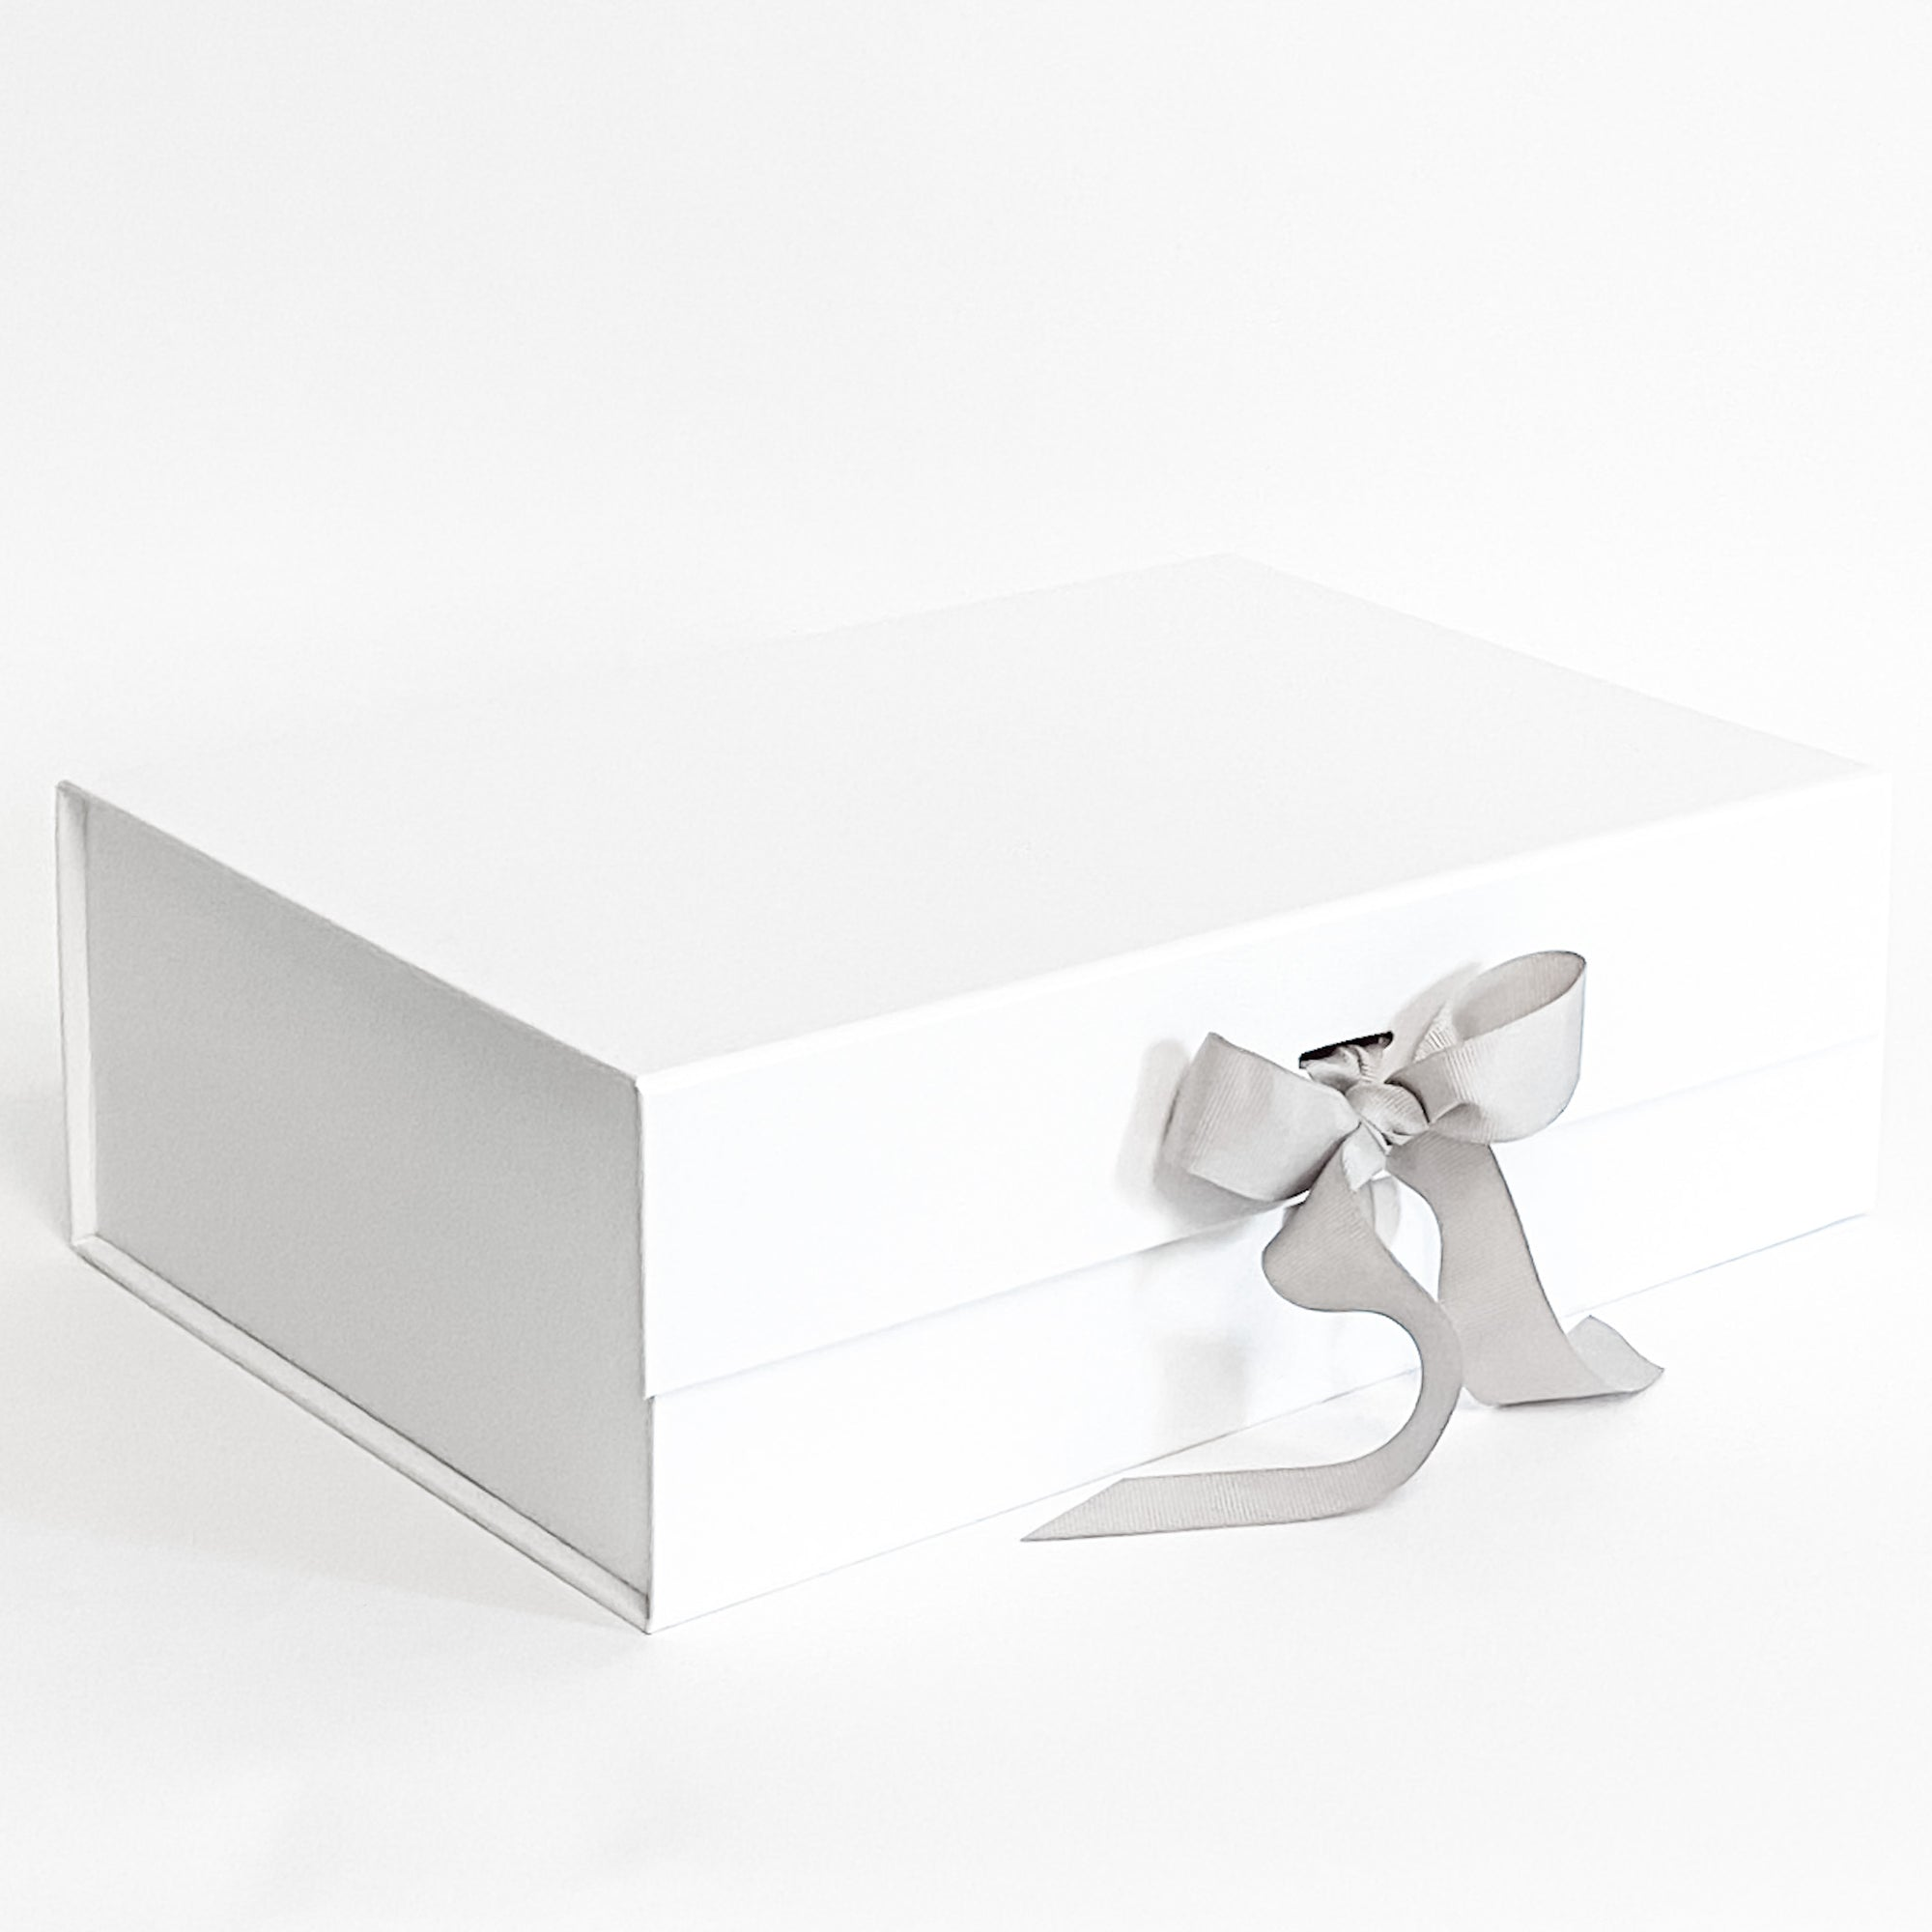 White Gift Box with Gray Grosgrain Ribbon